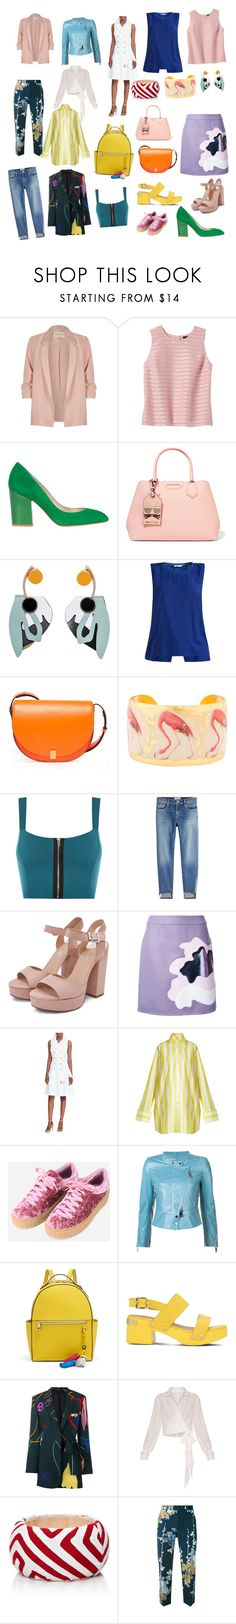 """Работа - отдых"" by elenamarkina on Polyvore featuring River Island, Banana Republic, Karen Millen, Karl Lagerfeld, Marni, J.Lindeberg, Victoria Beckham, Évocateur, WearAll and Frame"